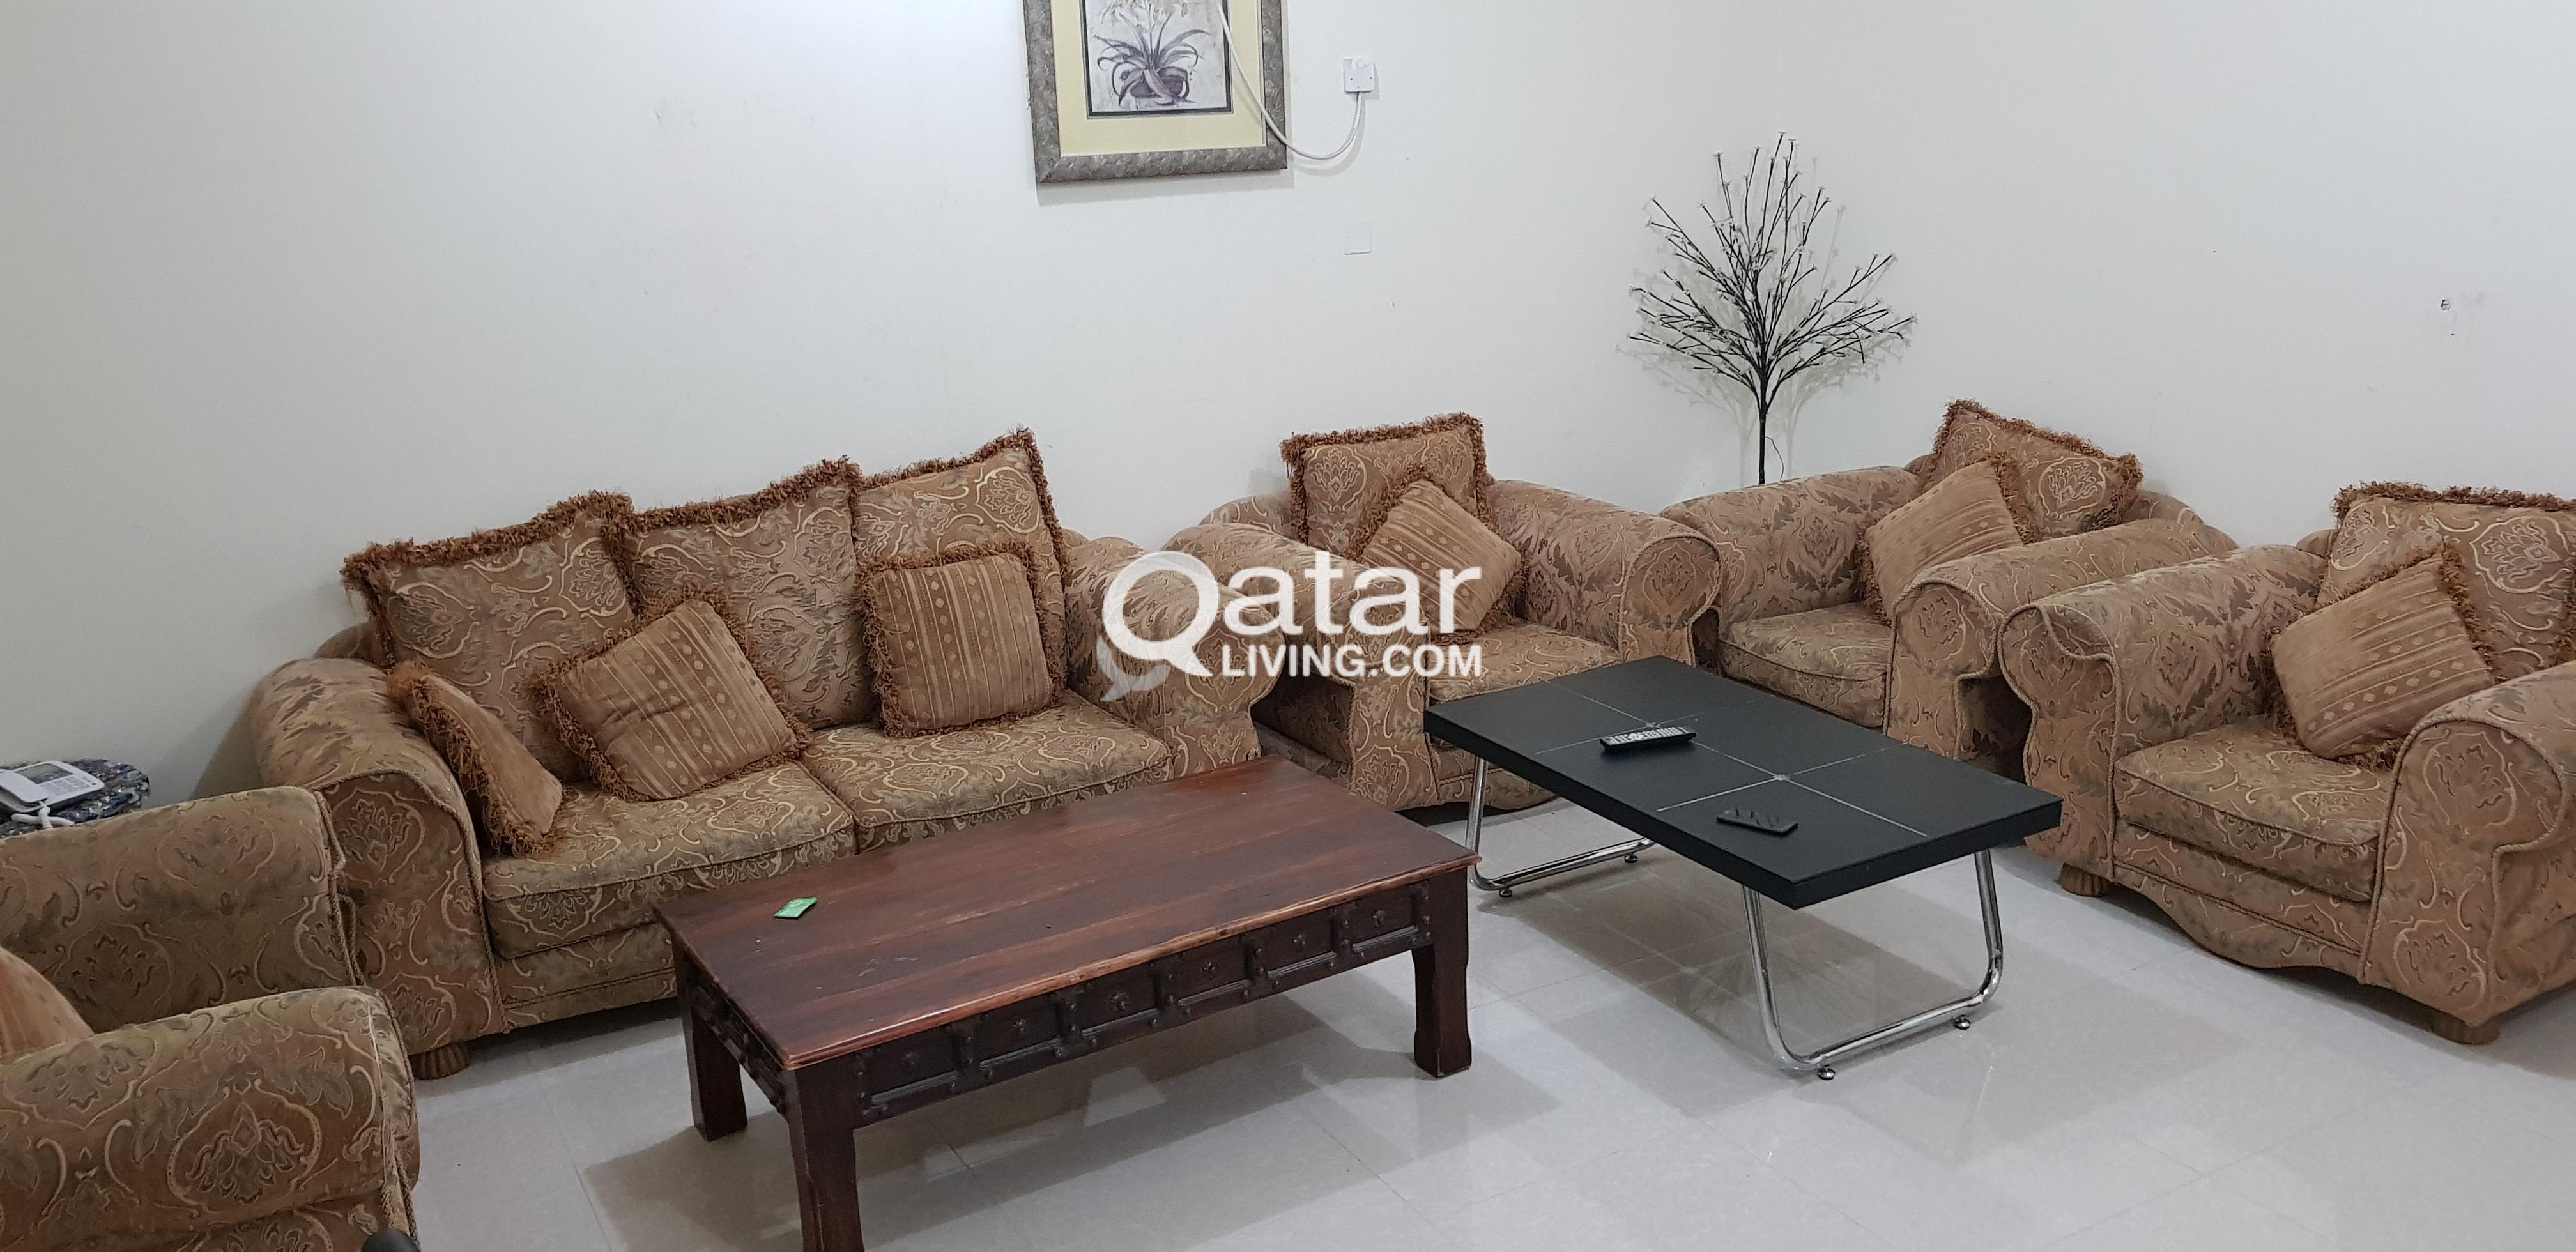 Stupendous 7 Seater Sofa Set For Sale Qatar Living Gmtry Best Dining Table And Chair Ideas Images Gmtryco